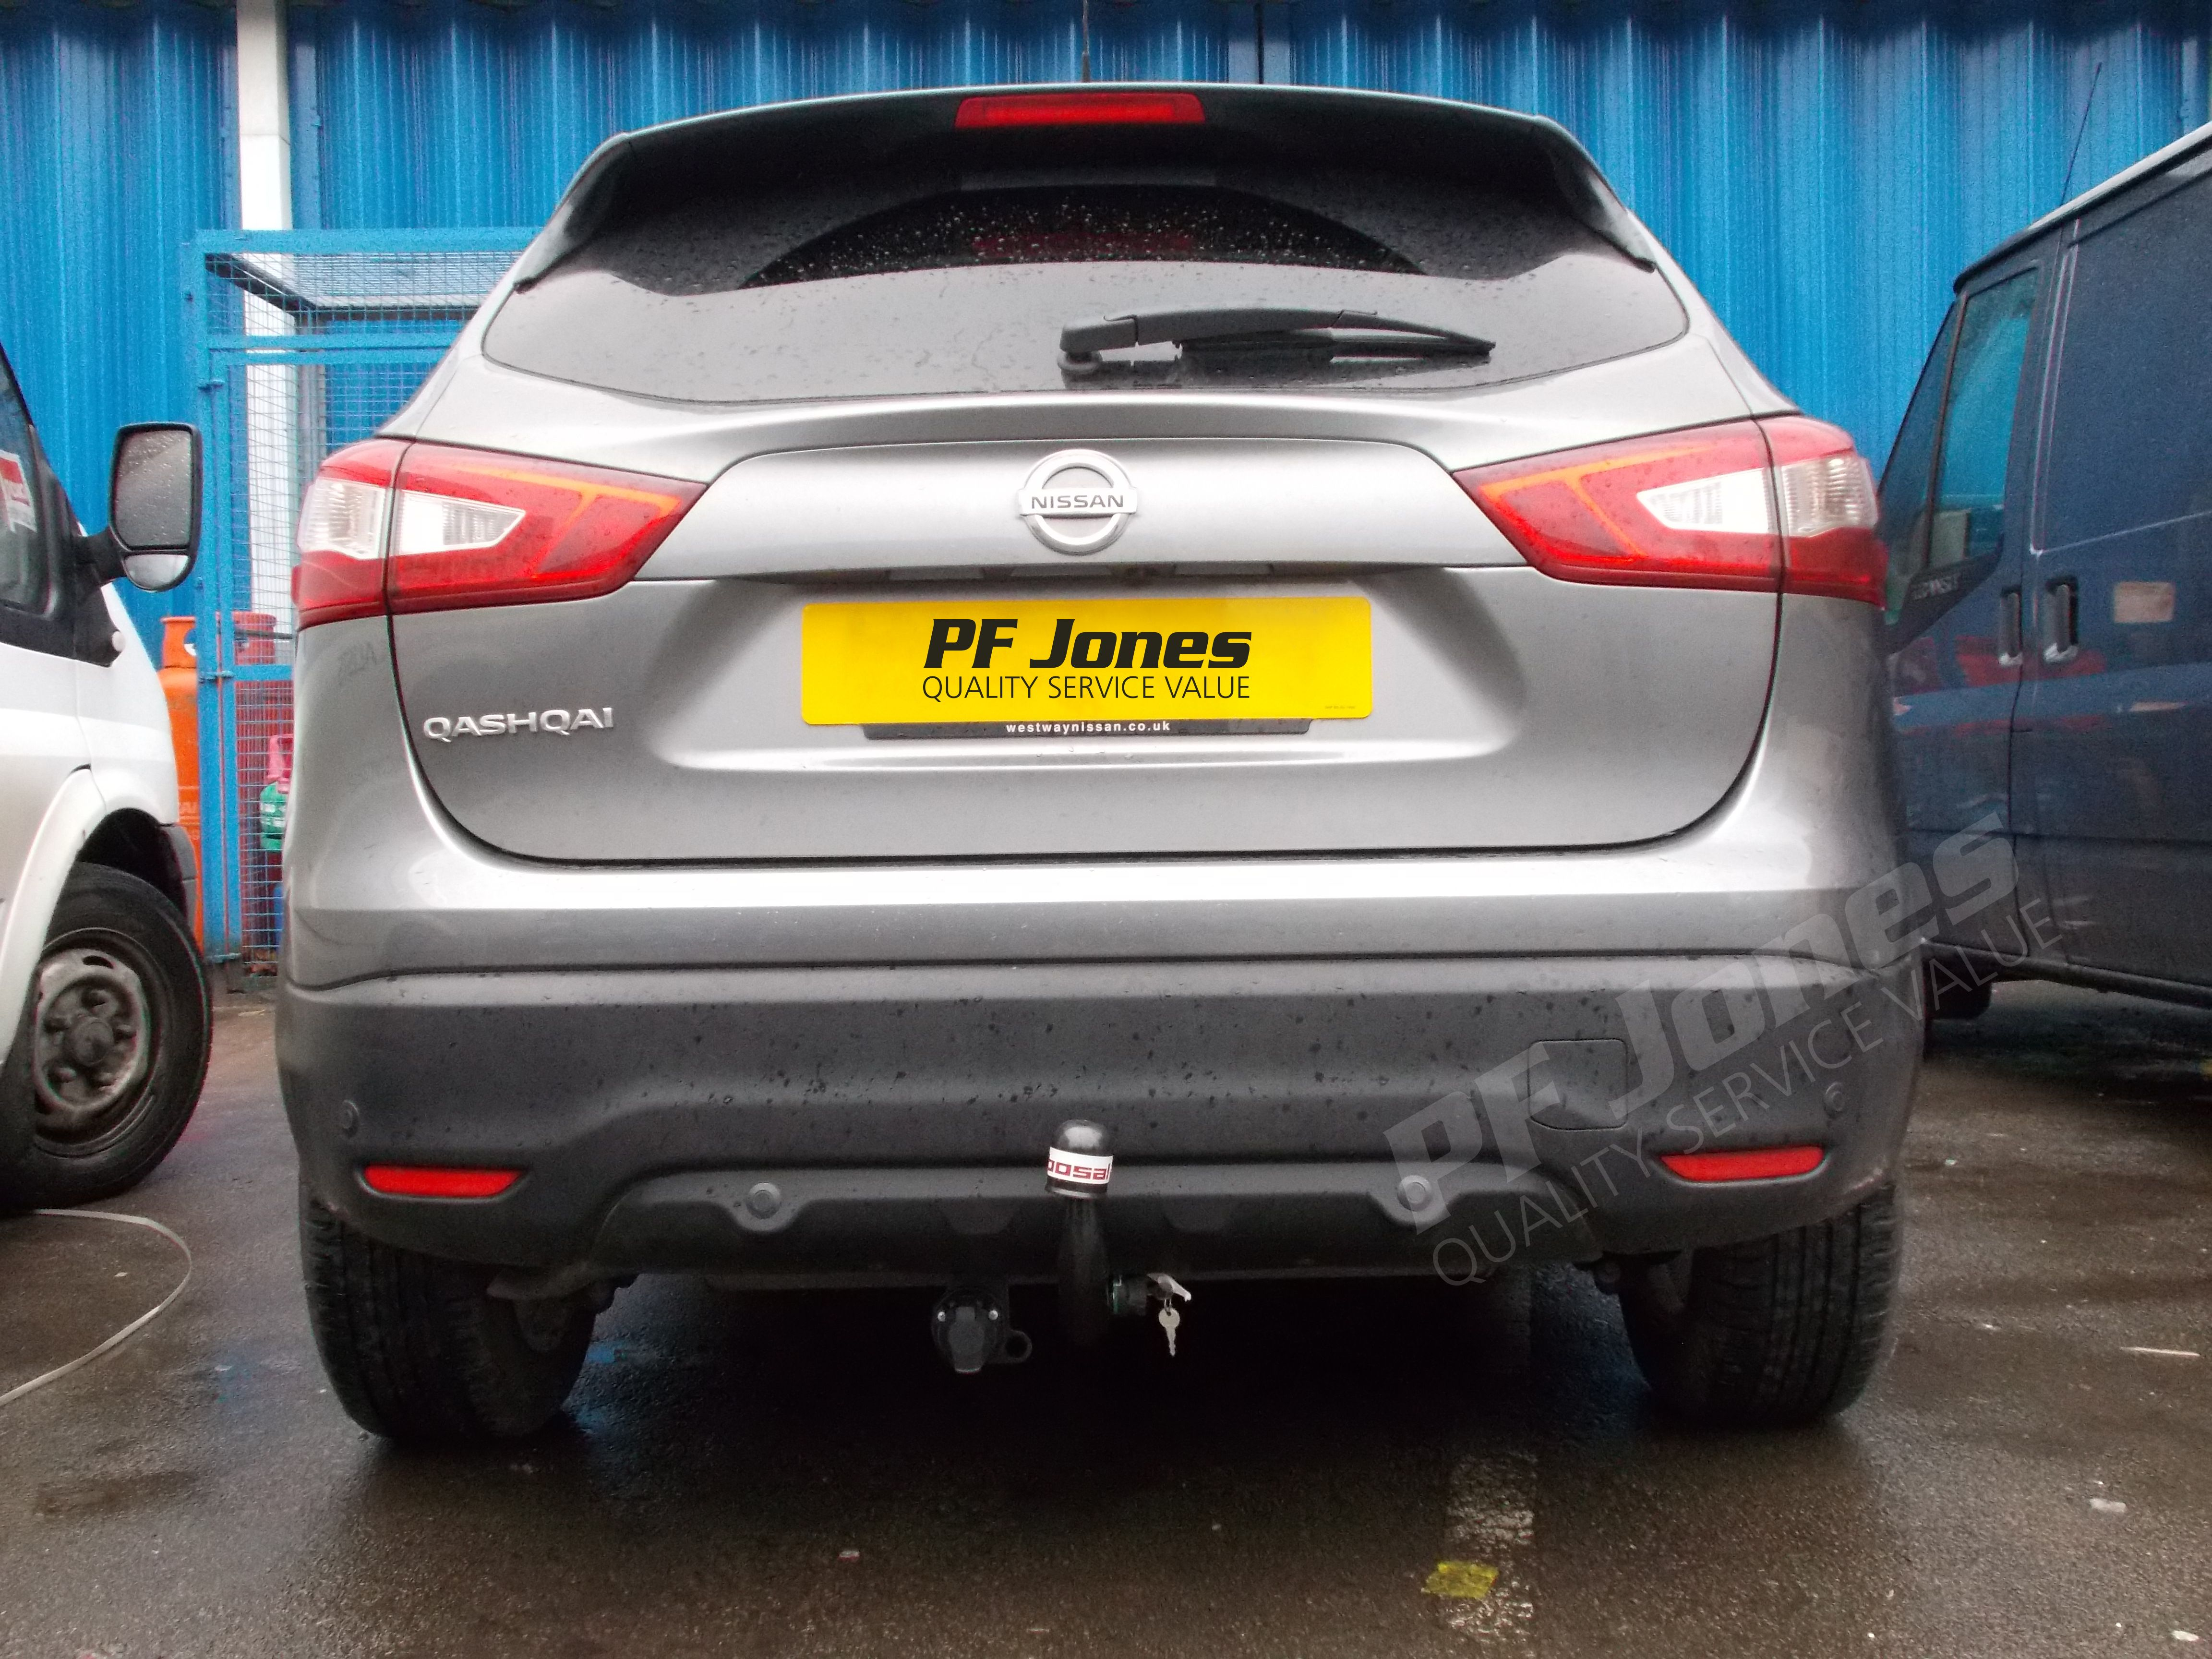 Nissan qashqai 2016 fitted with a bosal detachable swan neck 050 613 towbar